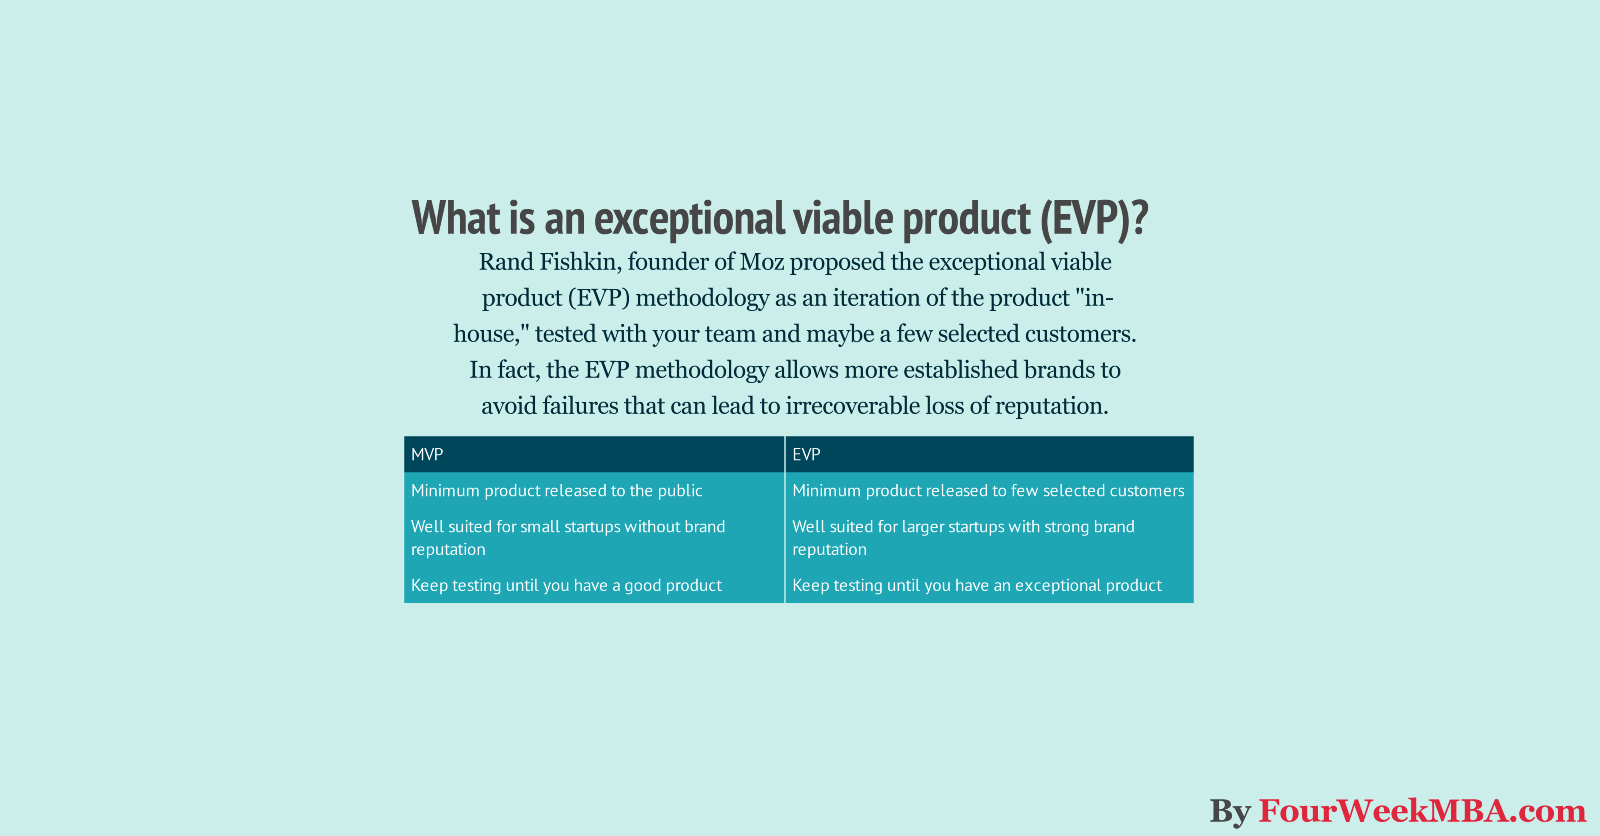 /what-is-the-minimum-viable-product-why-use-the-exceptional-viable-product-instead-346769e4dd49 feature image